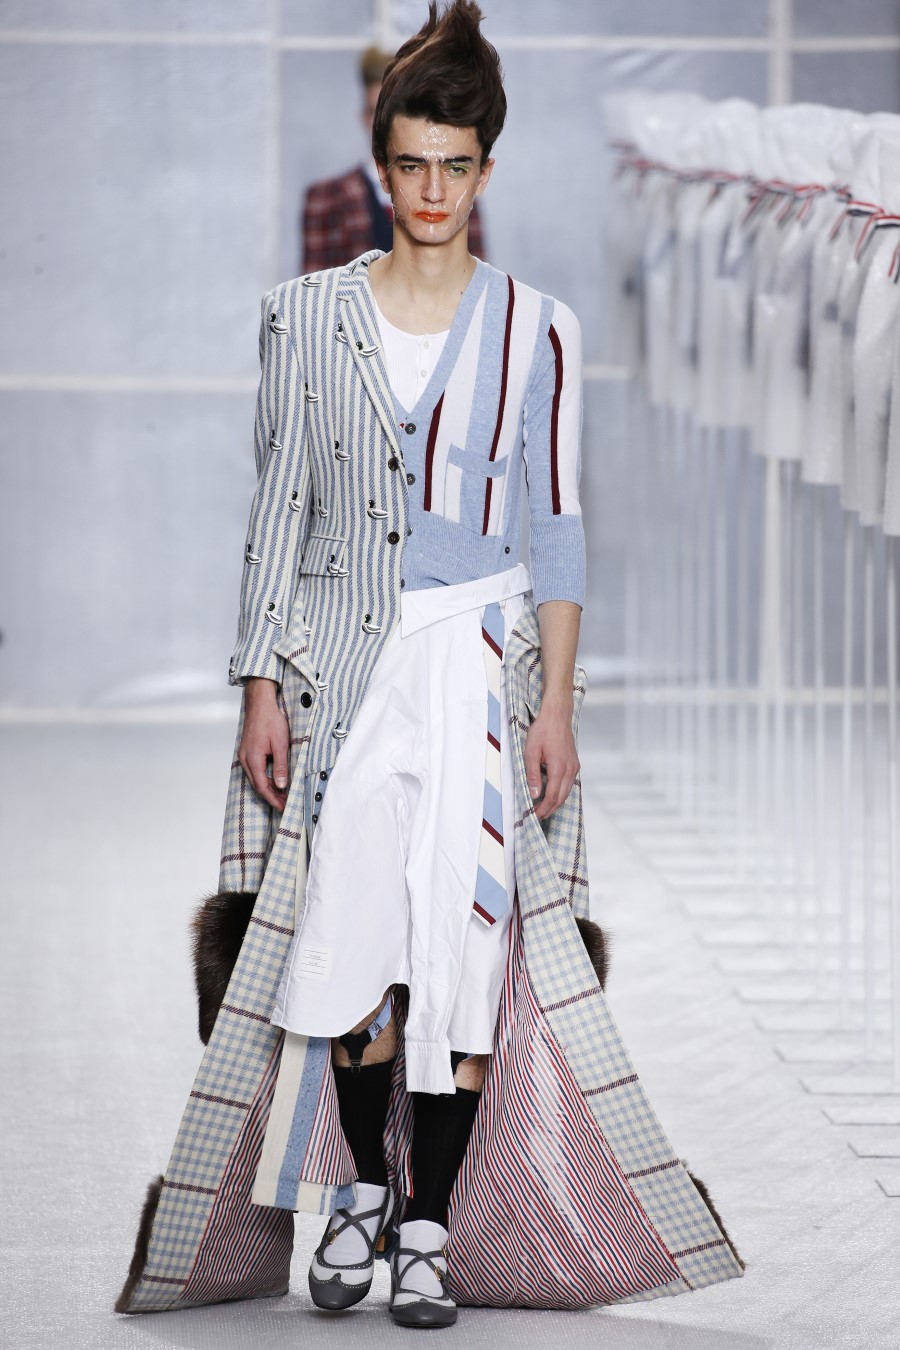 Thom Browne Men's Fall Winter 2019 - Paris Fashion Week